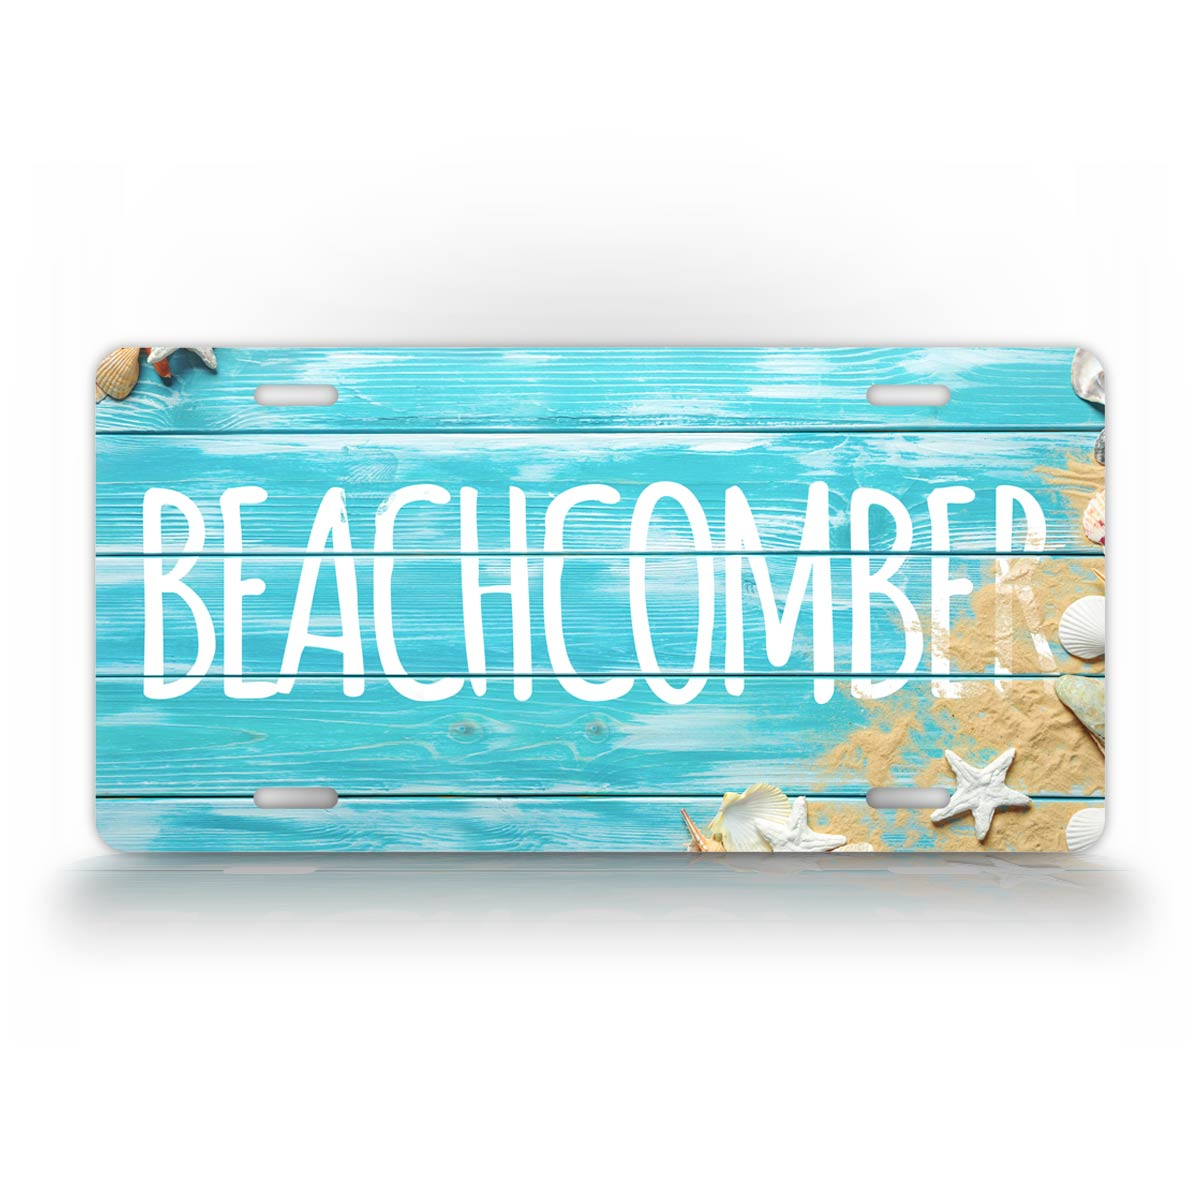 Vibrant Beachcomber License Plate With Sea Shells And Sand